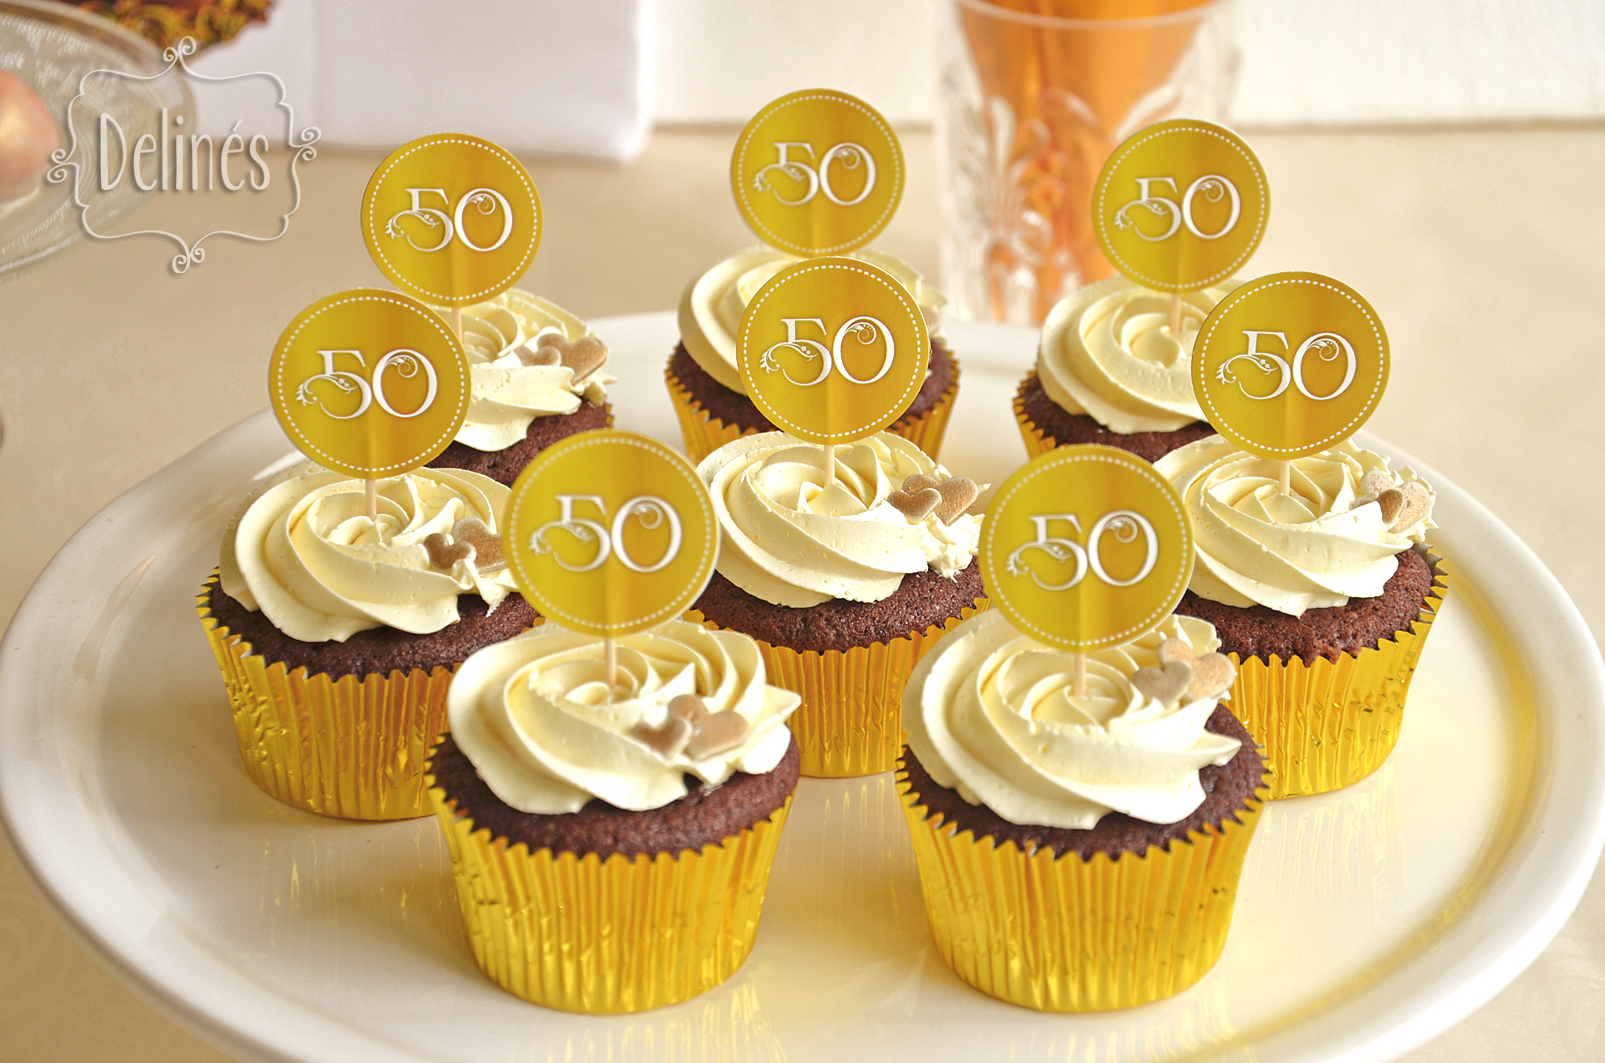 Decoracion Bodas De Oro ~   wedding result forward bodas de oro cupcakes jpg 1605 1063 bodas